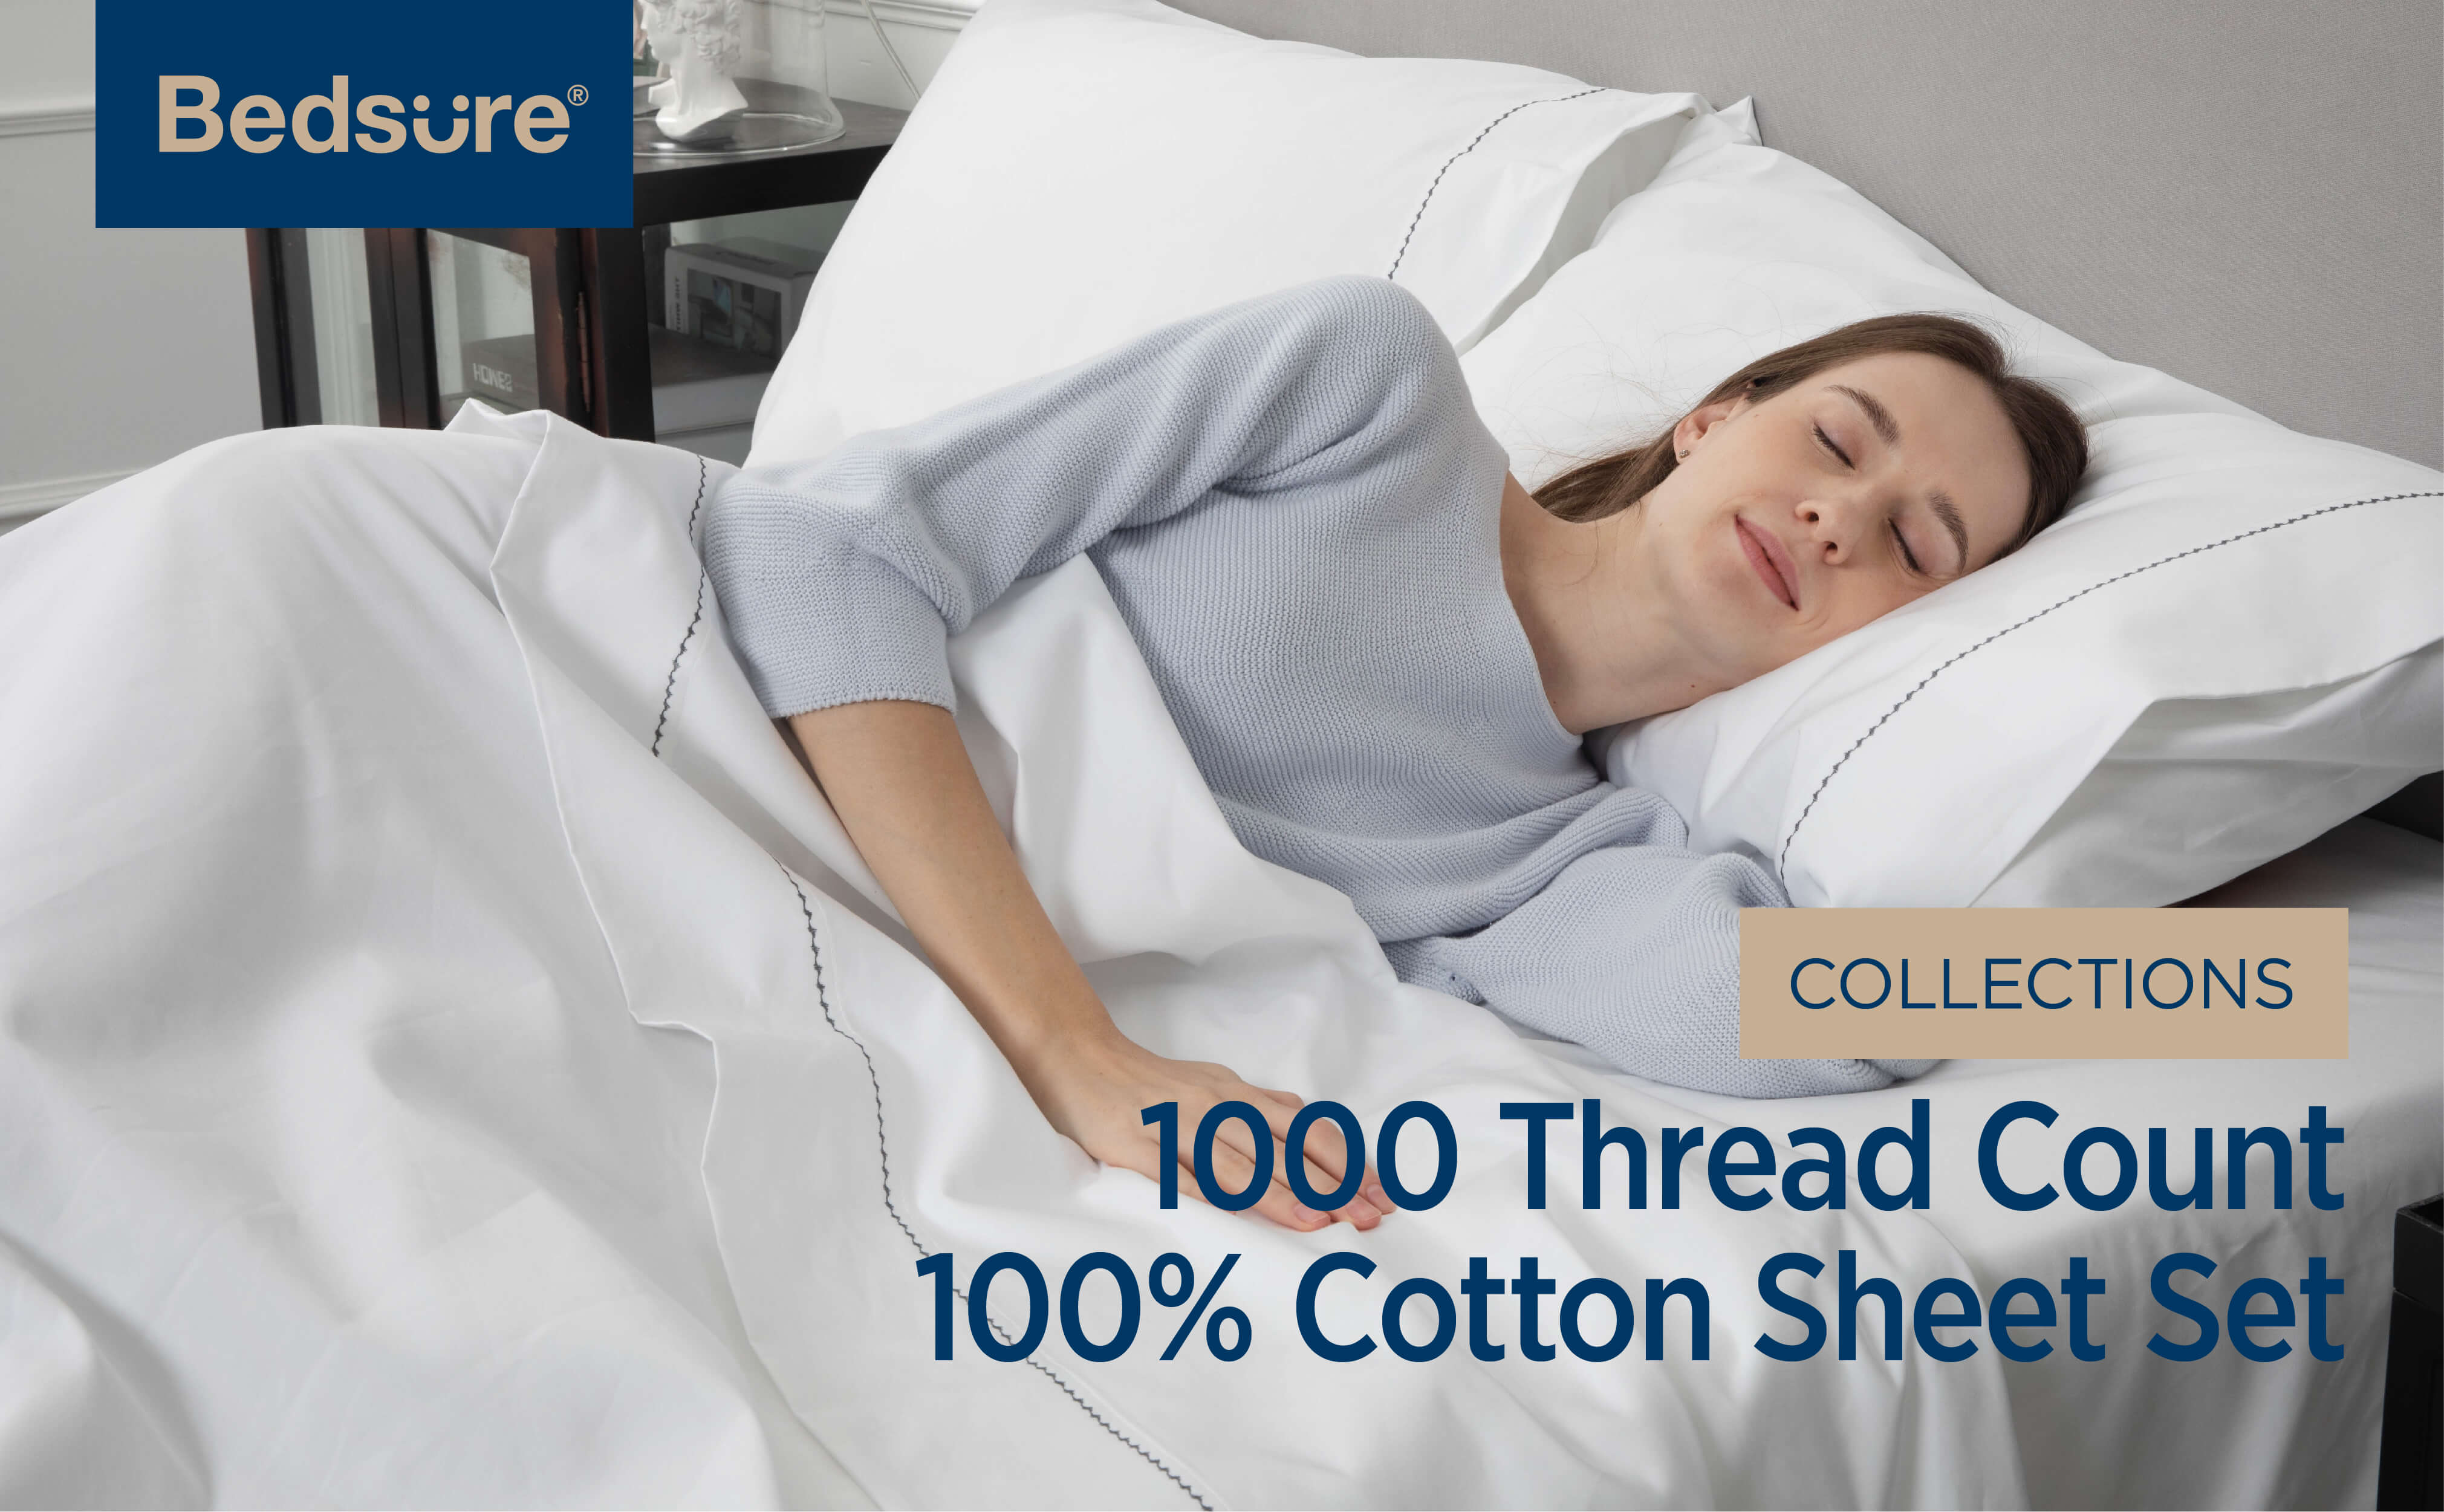 1000 Thread Count Bedsure Bed Sheets 1